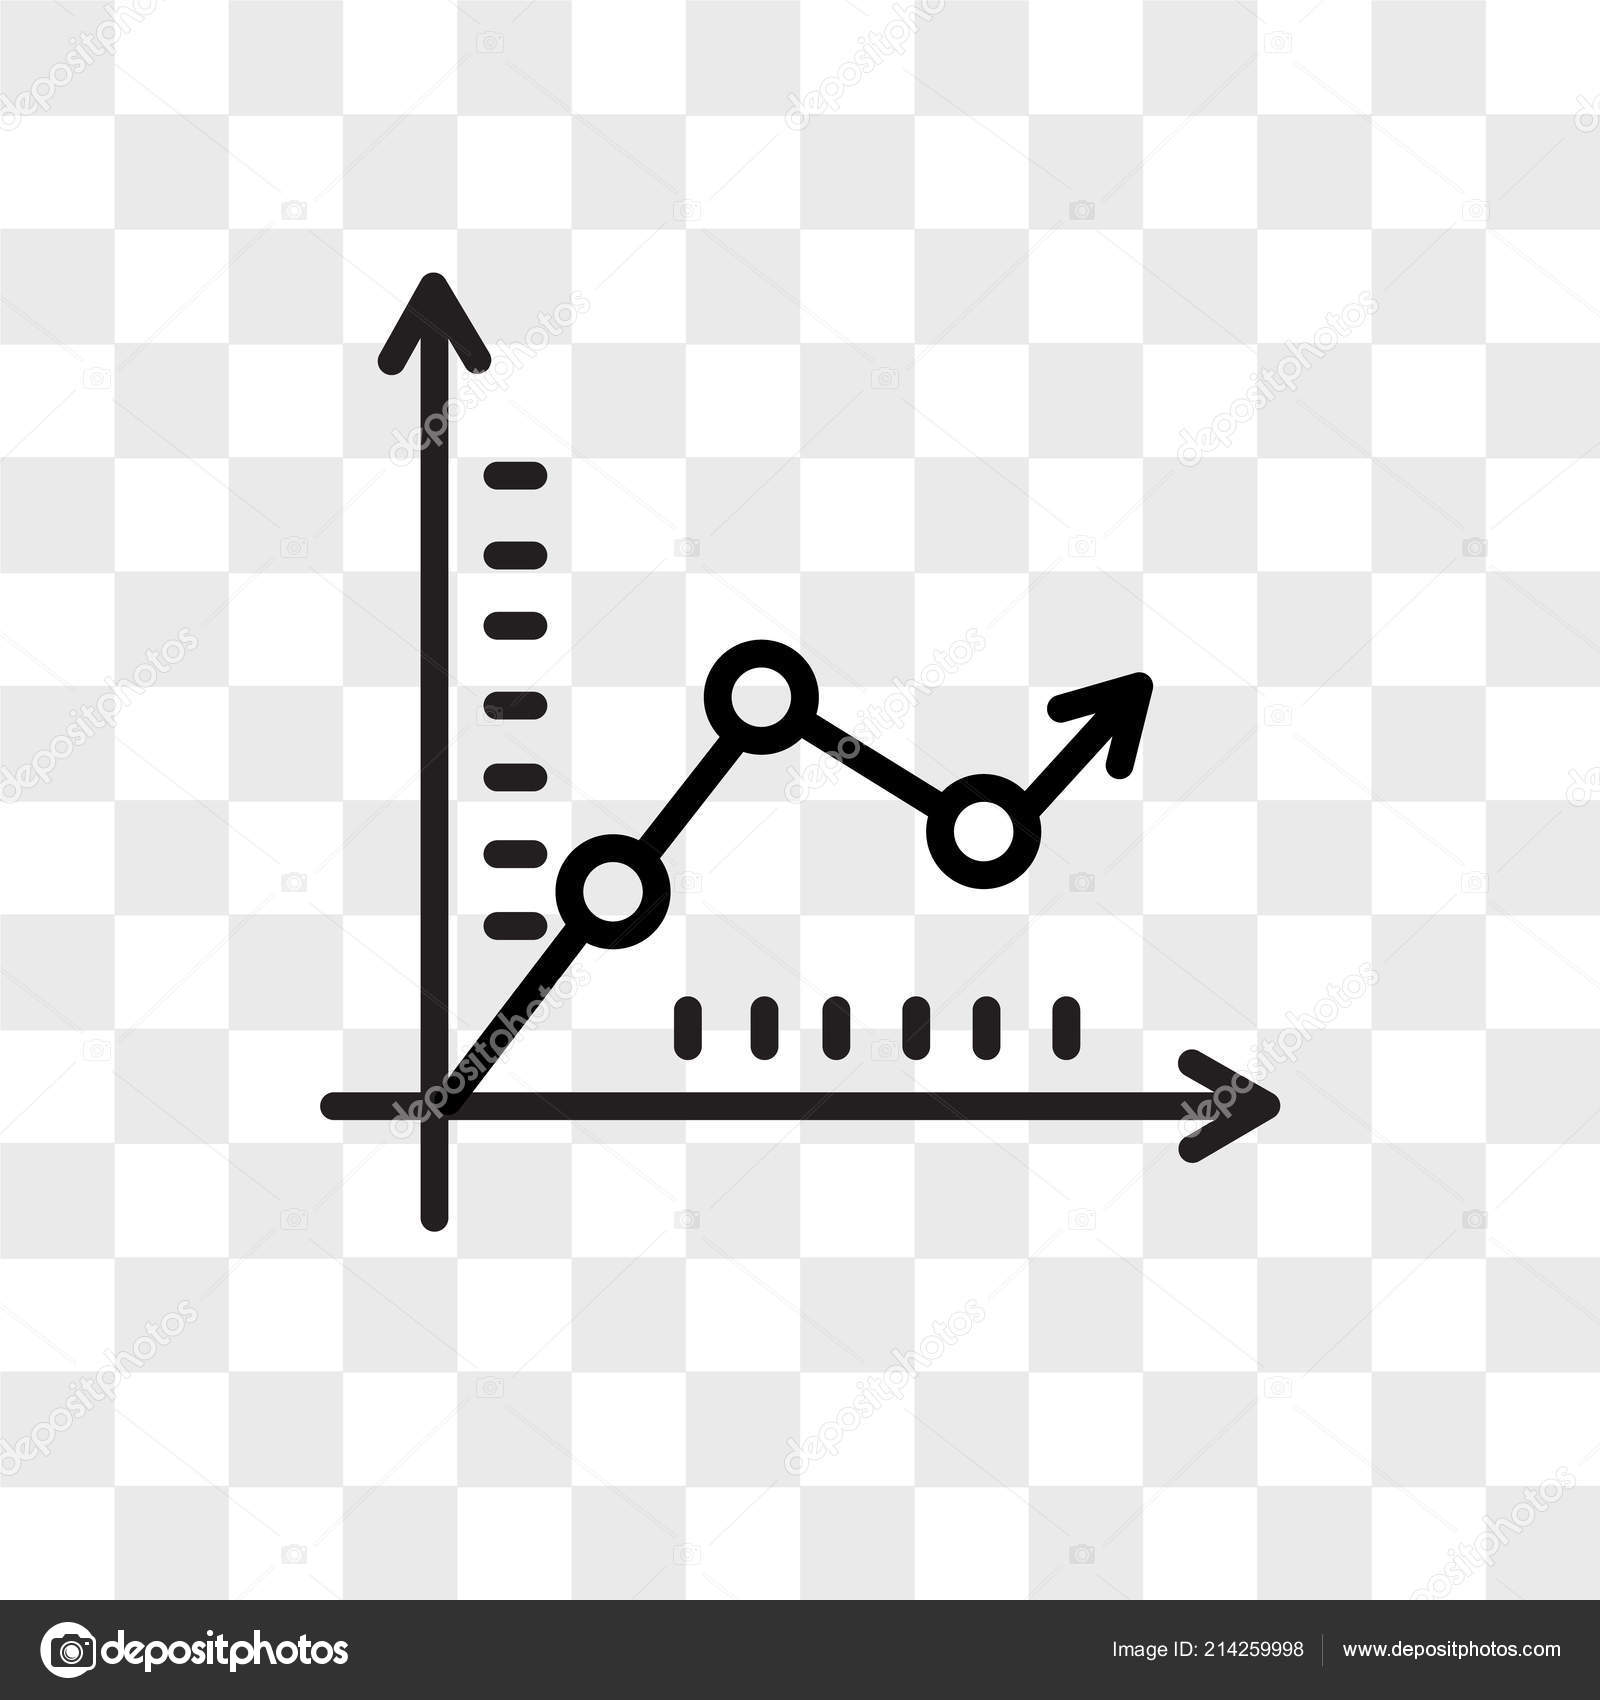 graph vector icon isolated